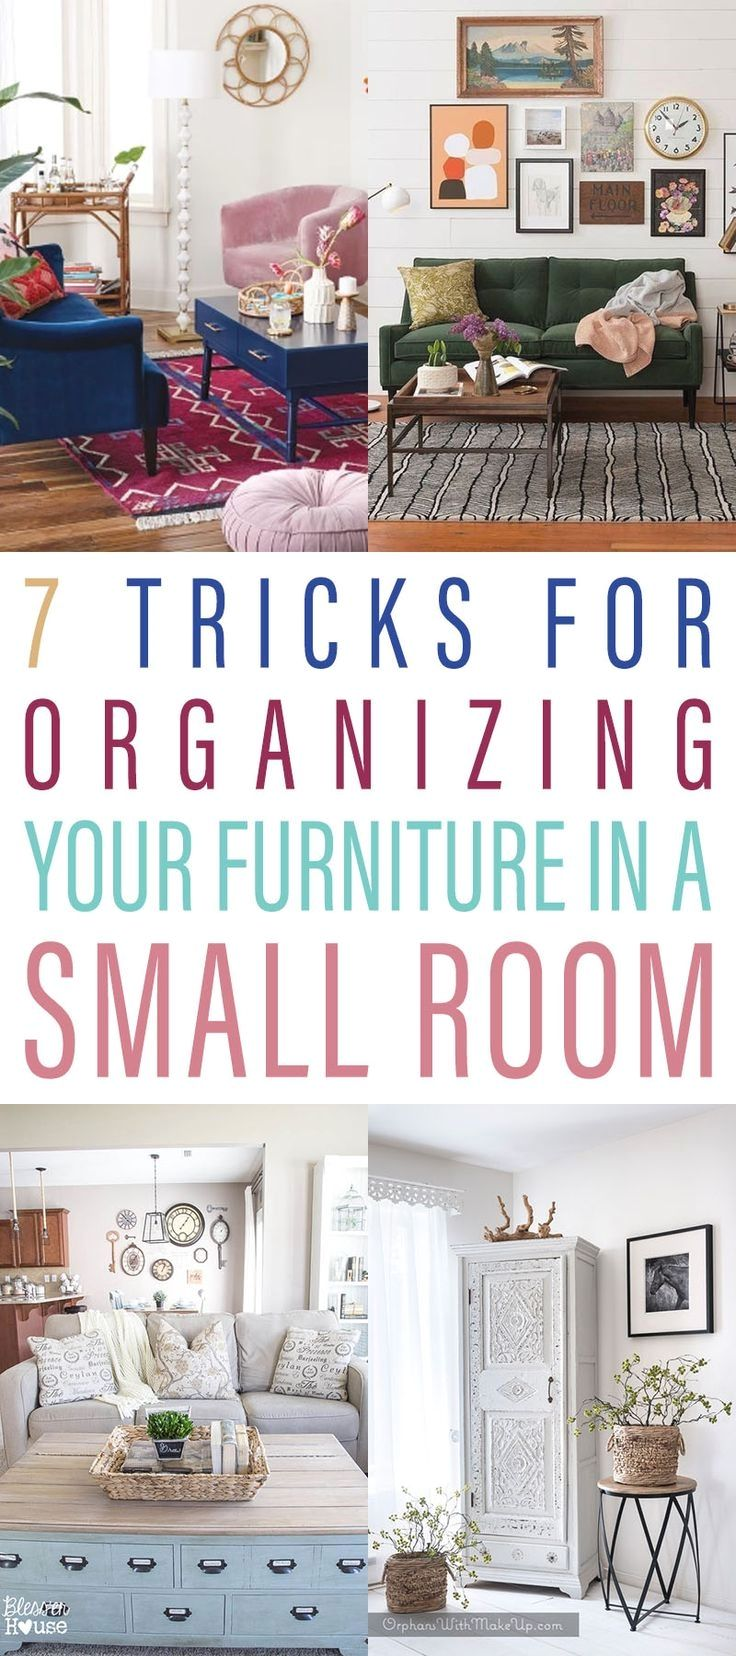 7 Tricks For Organizing Your Furniture In A Small Living Room images